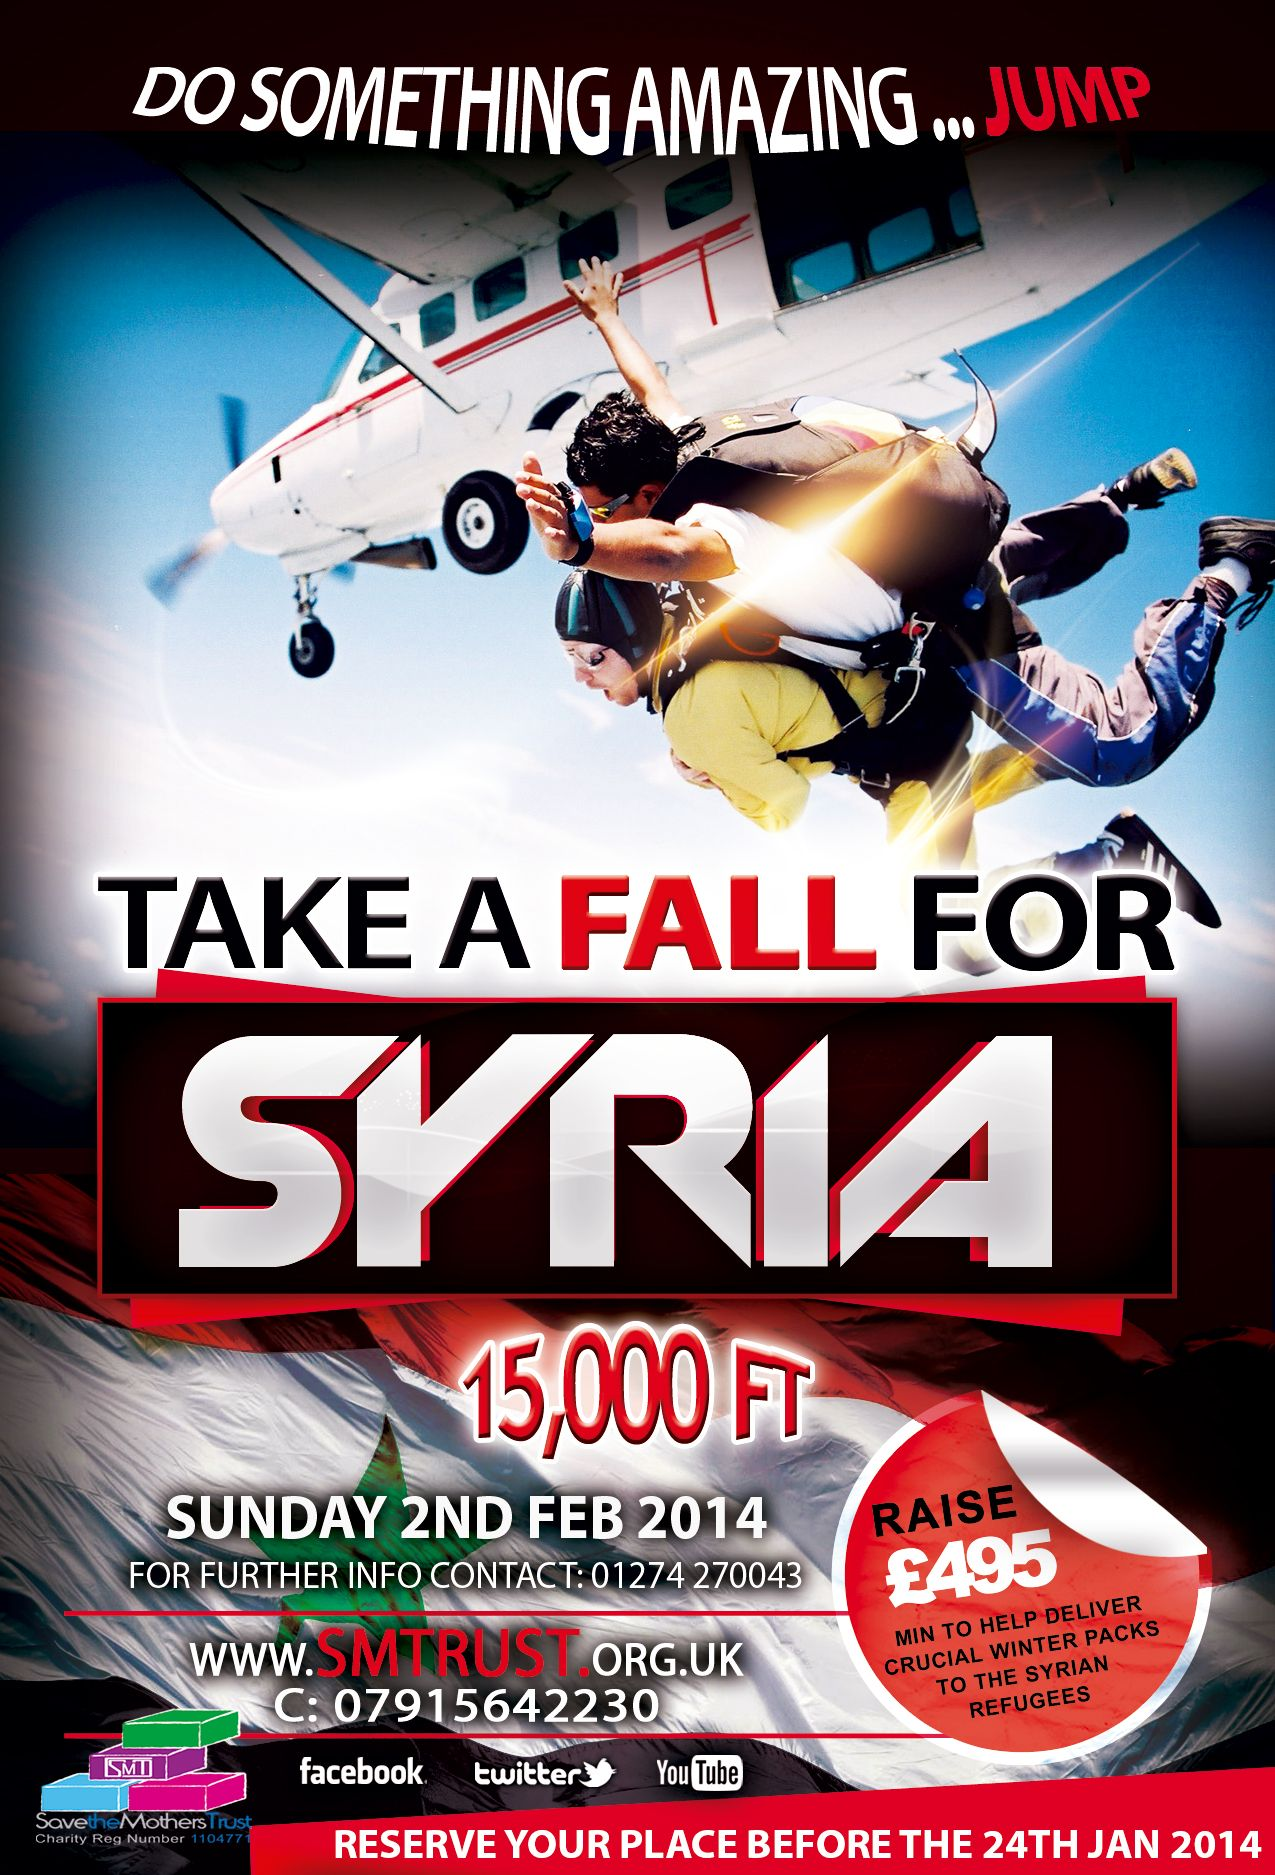 Poster campaign for skydive in aid of Syrian refugees